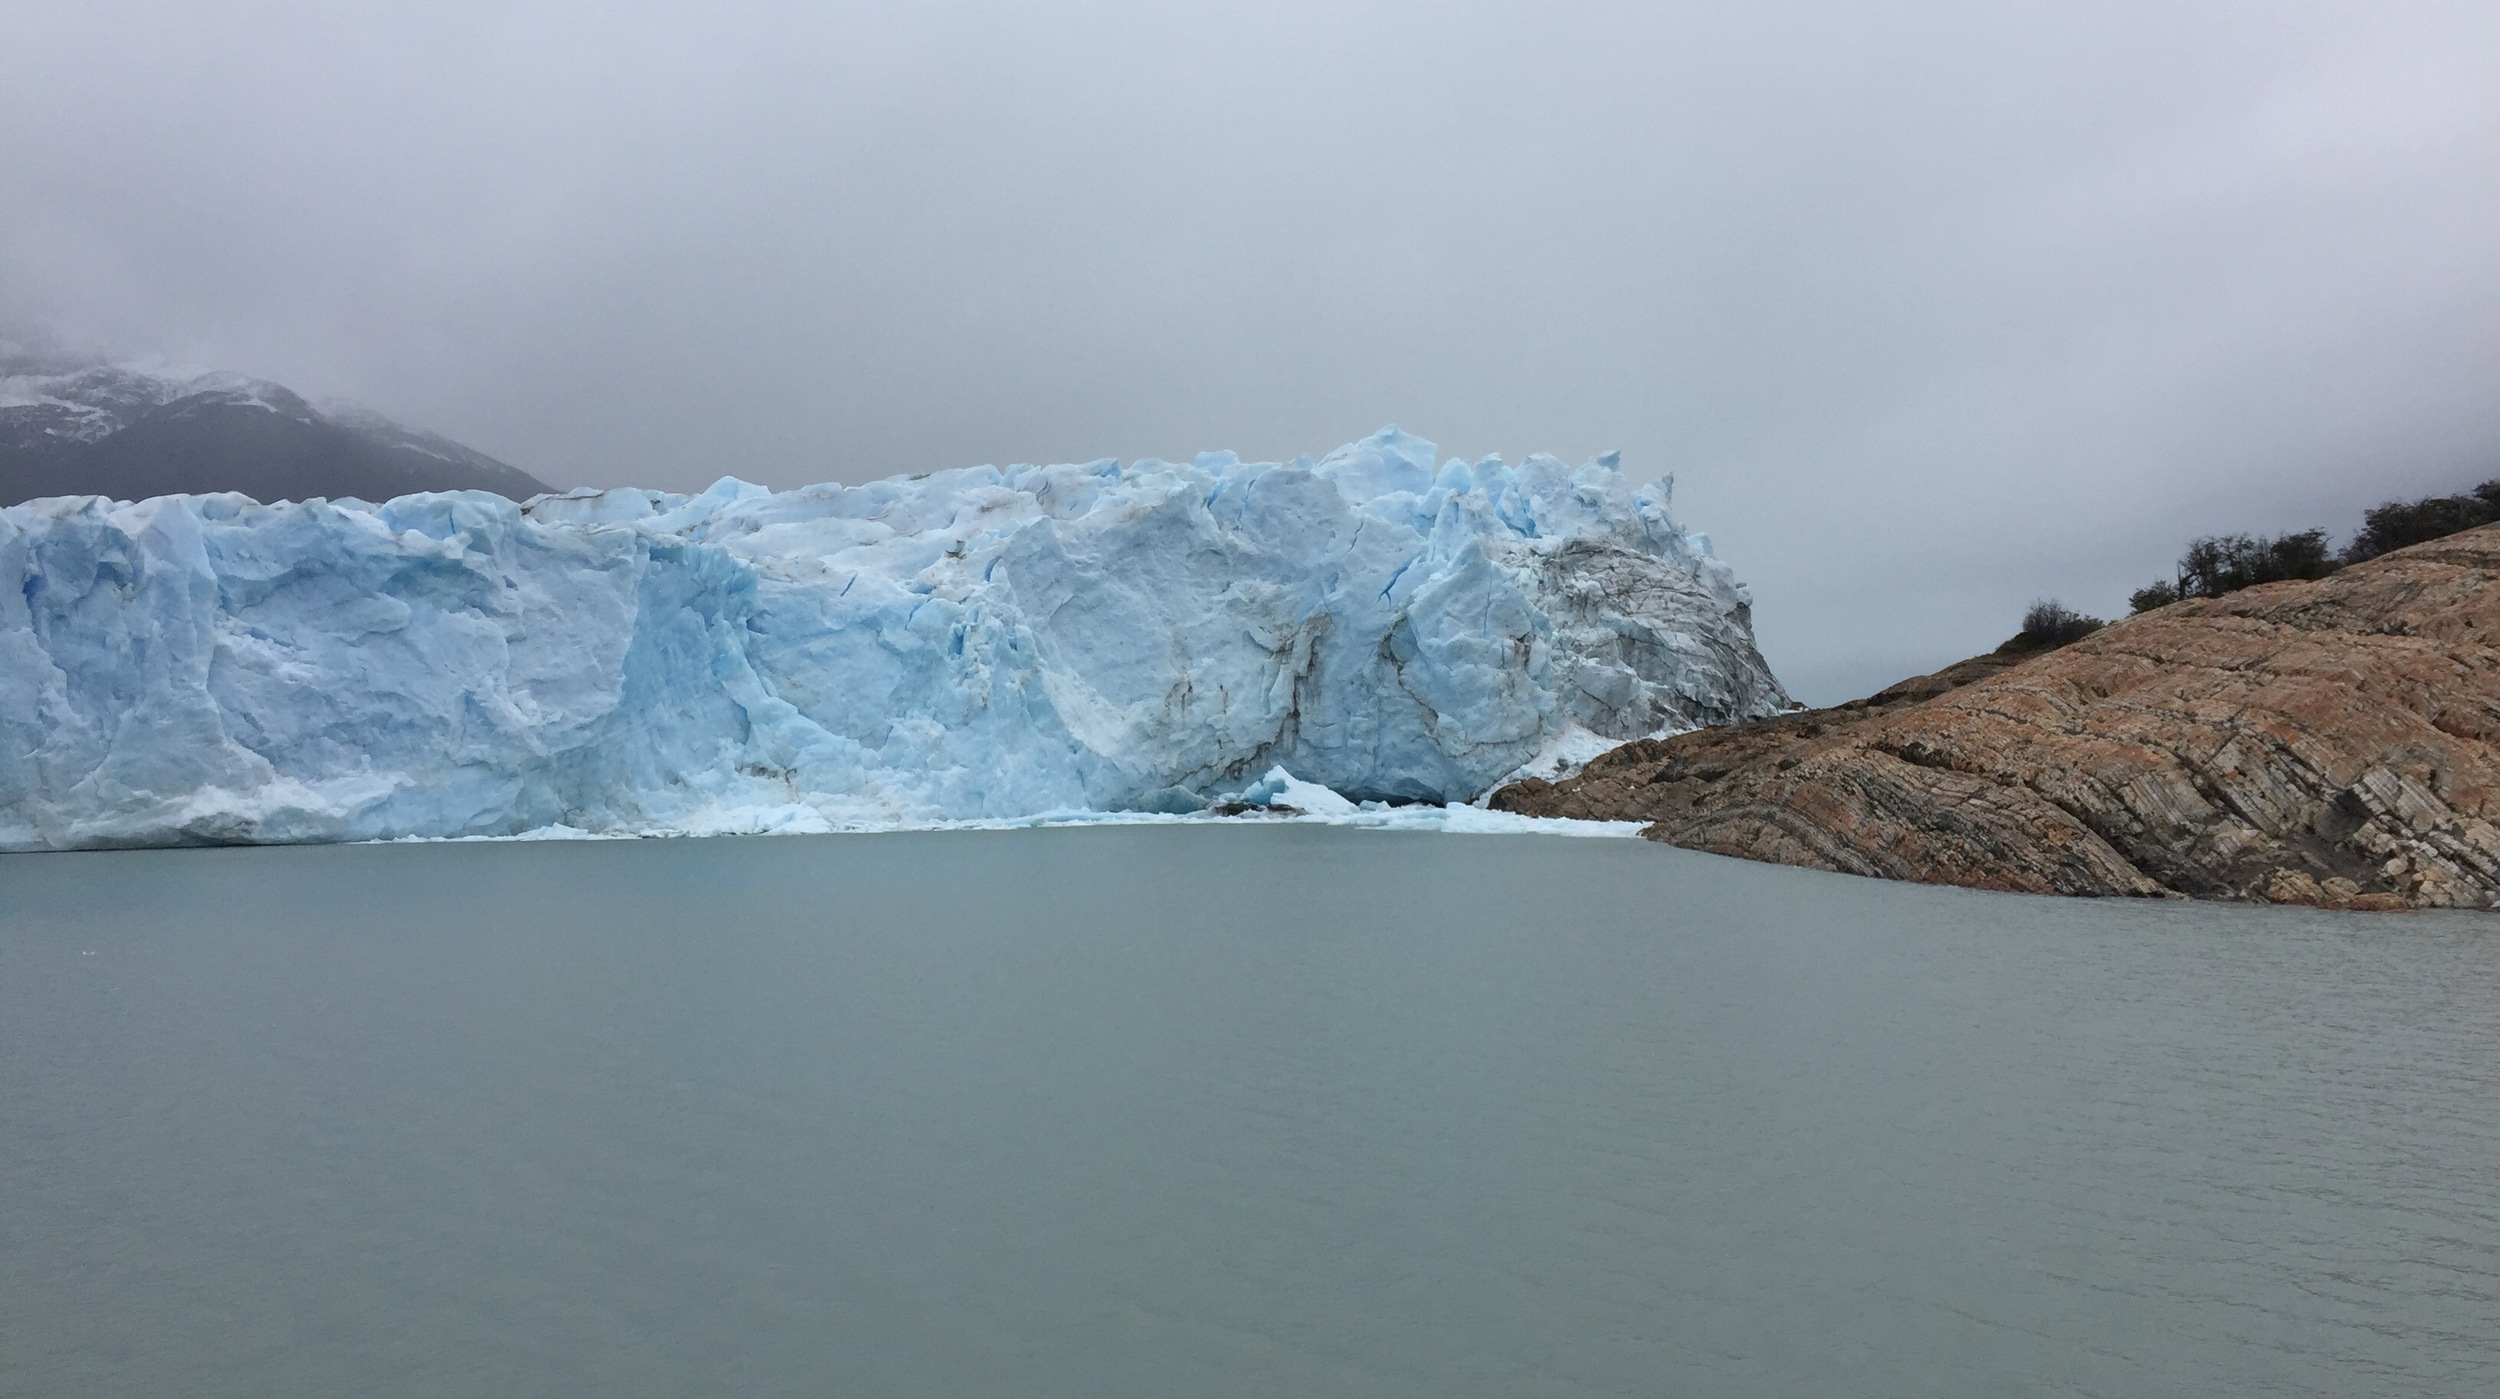 This is where the front of the glacier attaches to a rock face, forming a dam that periodically collapses when the weight of the water overcomes the ice.